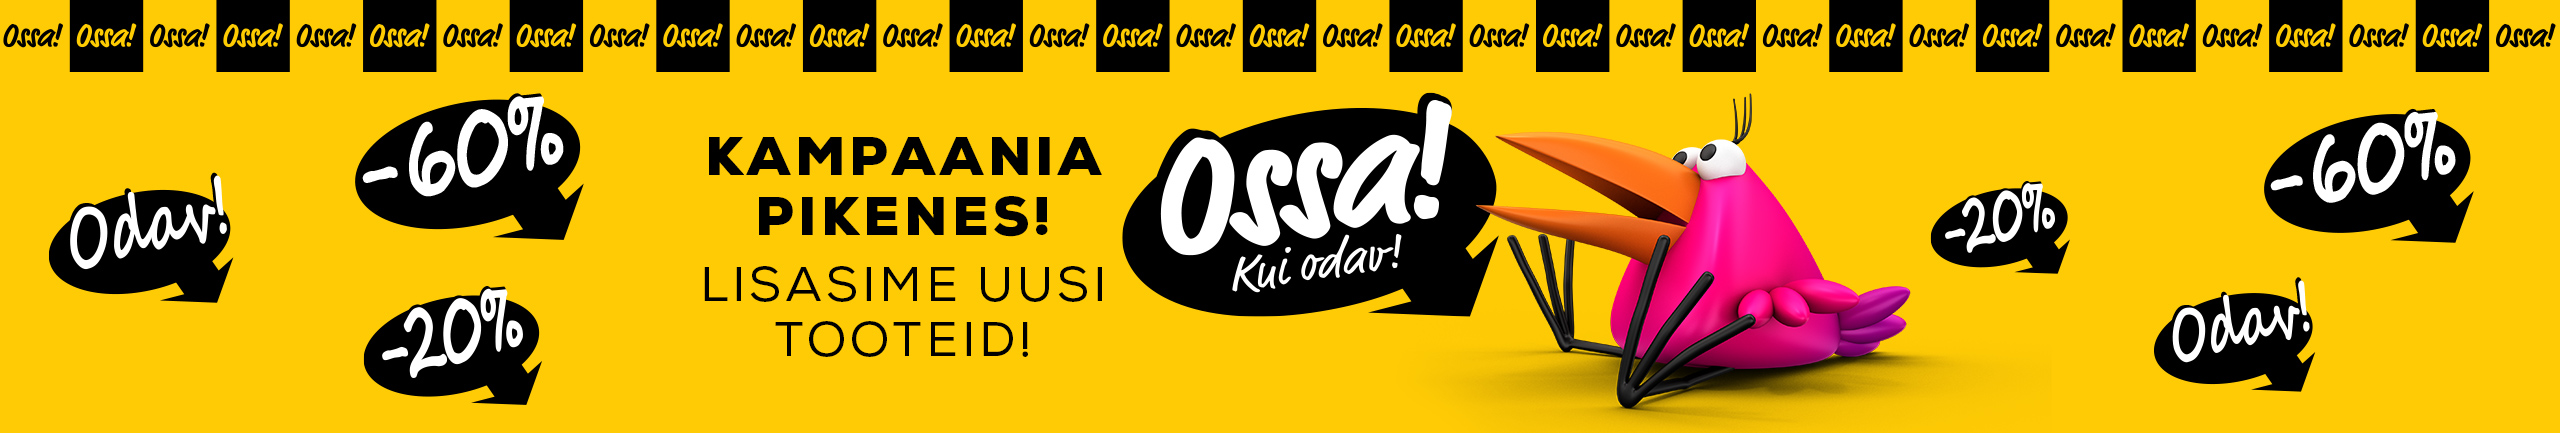 FronPageLarge Ossa extended 2021!